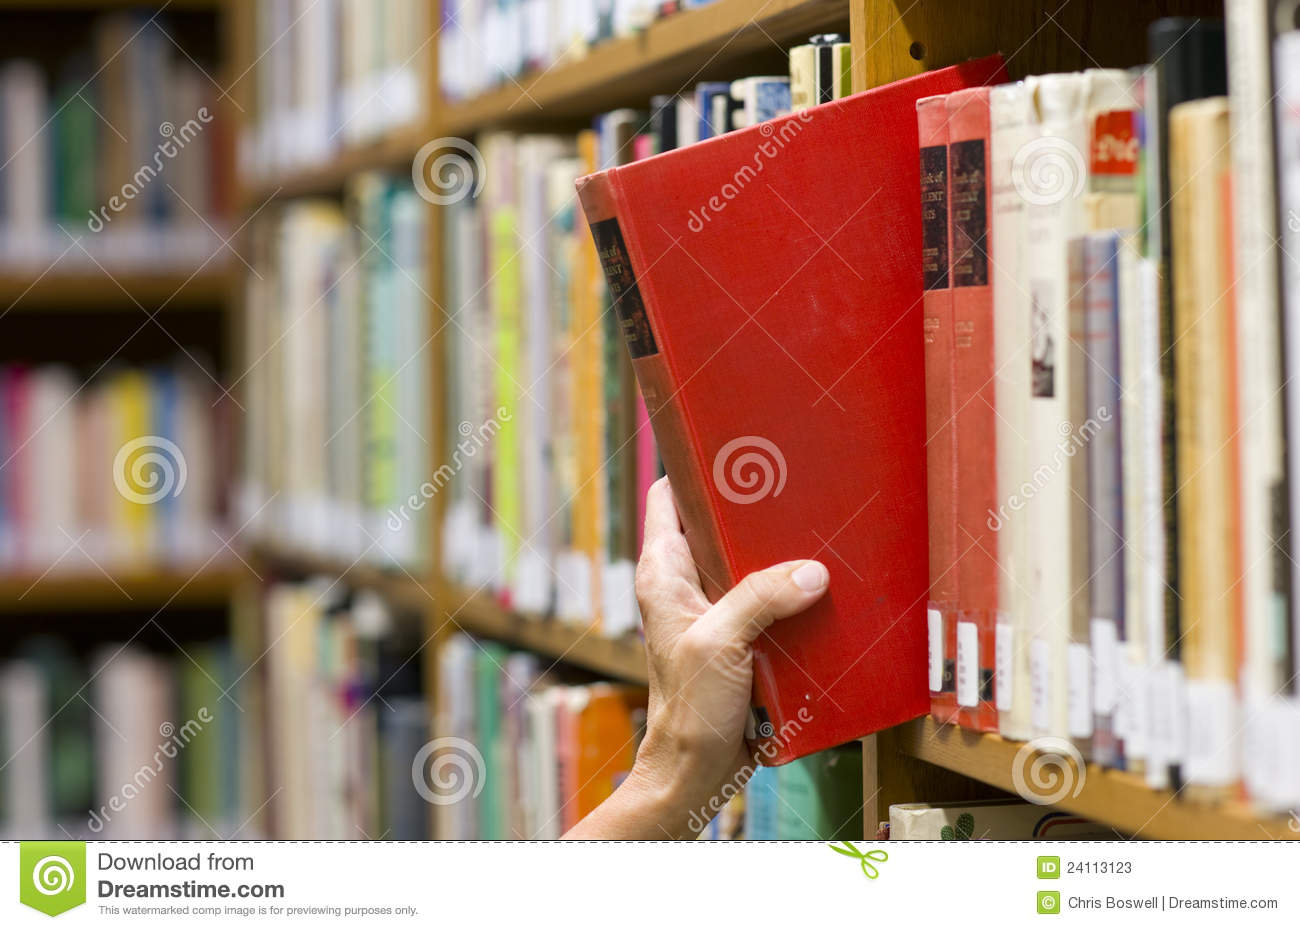 Woman Reaches Out Picking A Book Library Shelf Stock